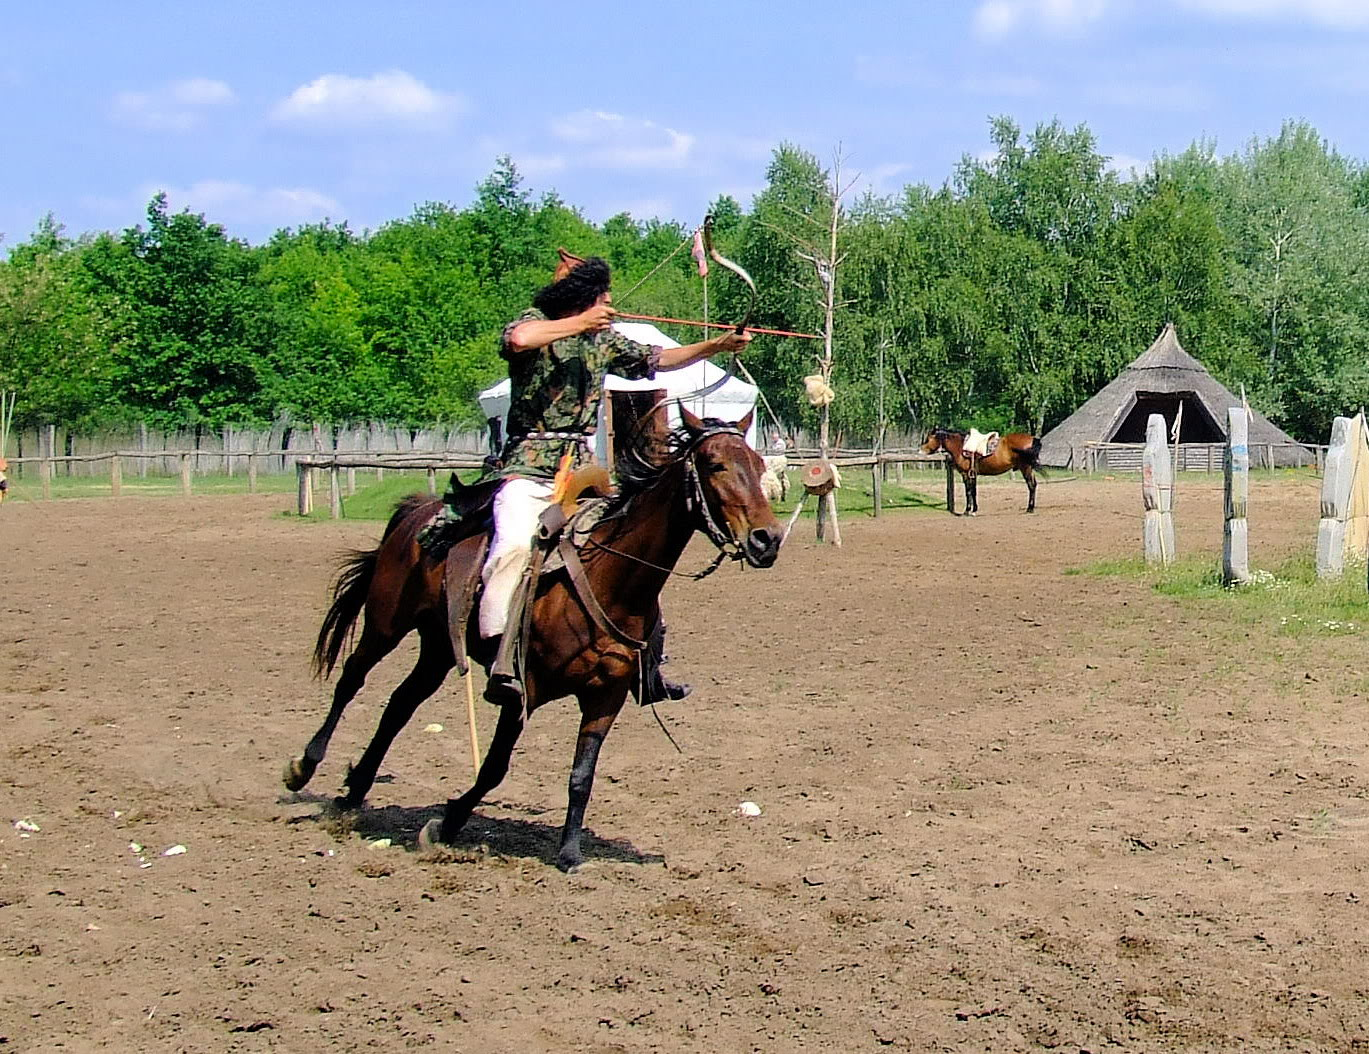 Horse | 馬 | Ngựa Hungarian_horse_archers